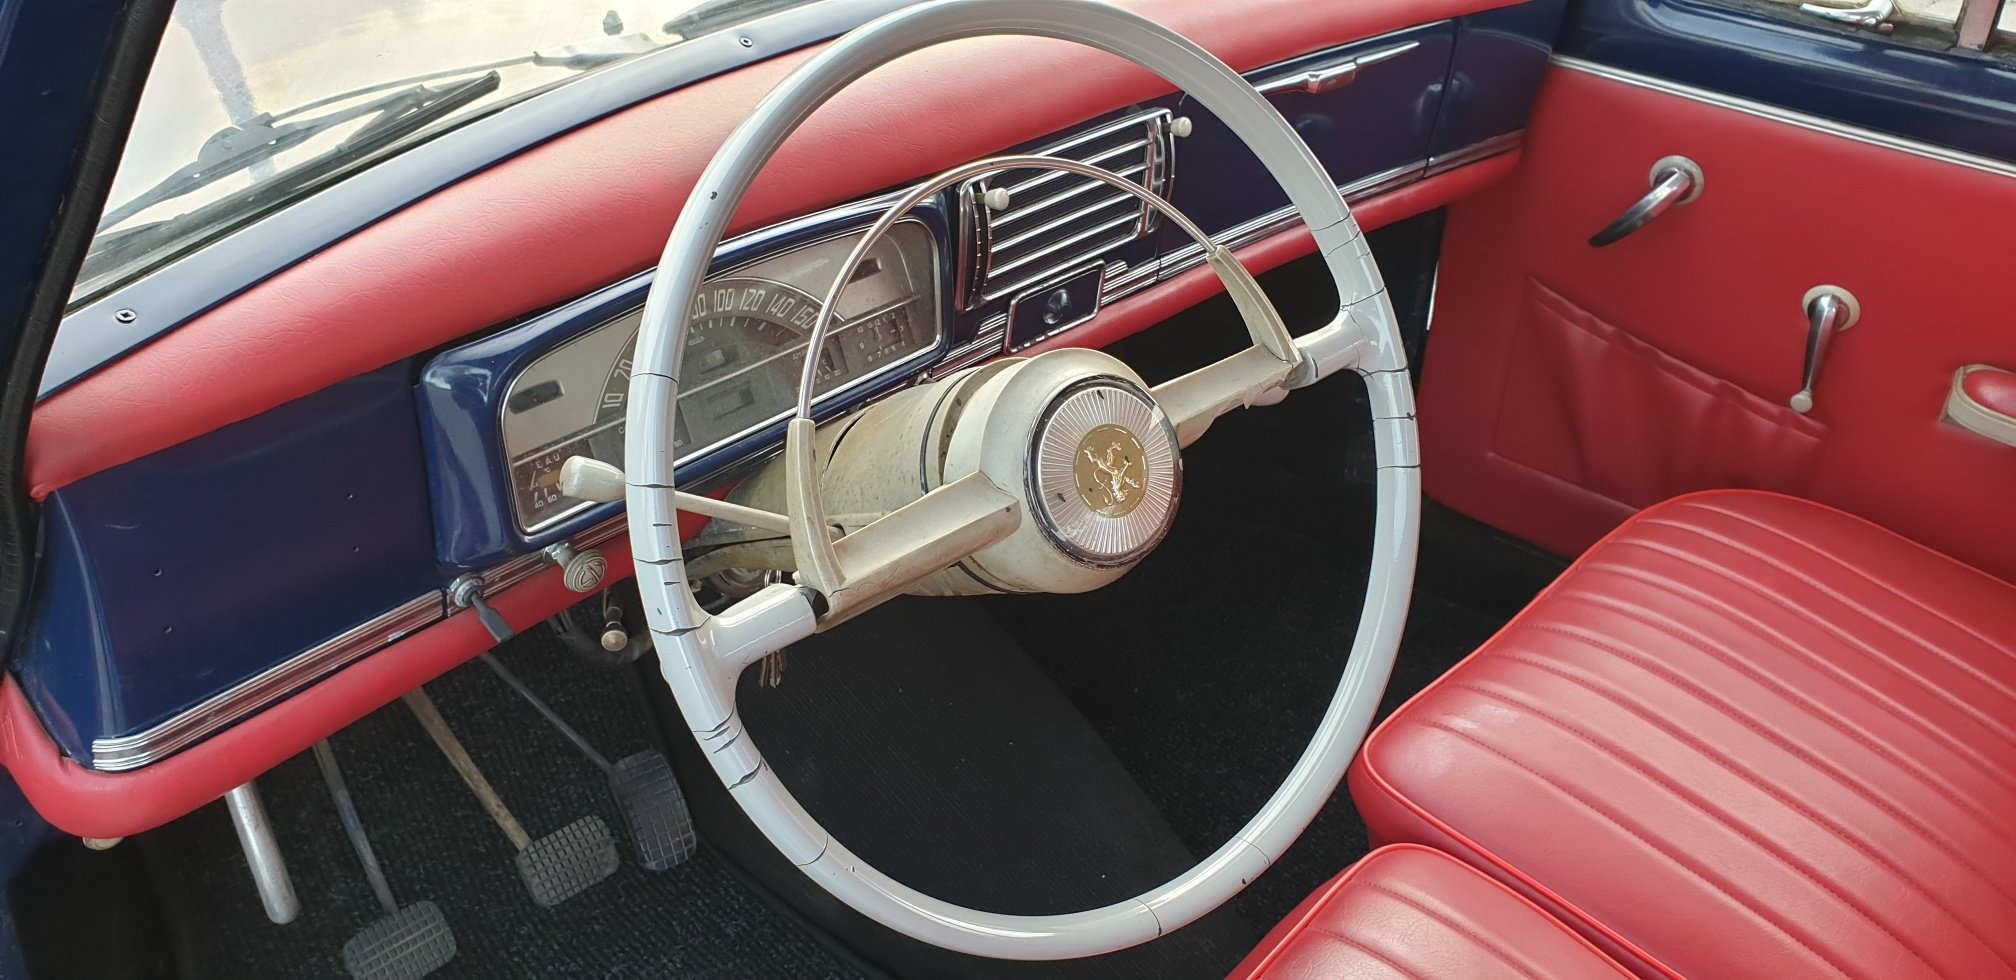 1960 Peugeot 403 Berline Grand Luxe for Sale For Sale (picture 5 of 6)